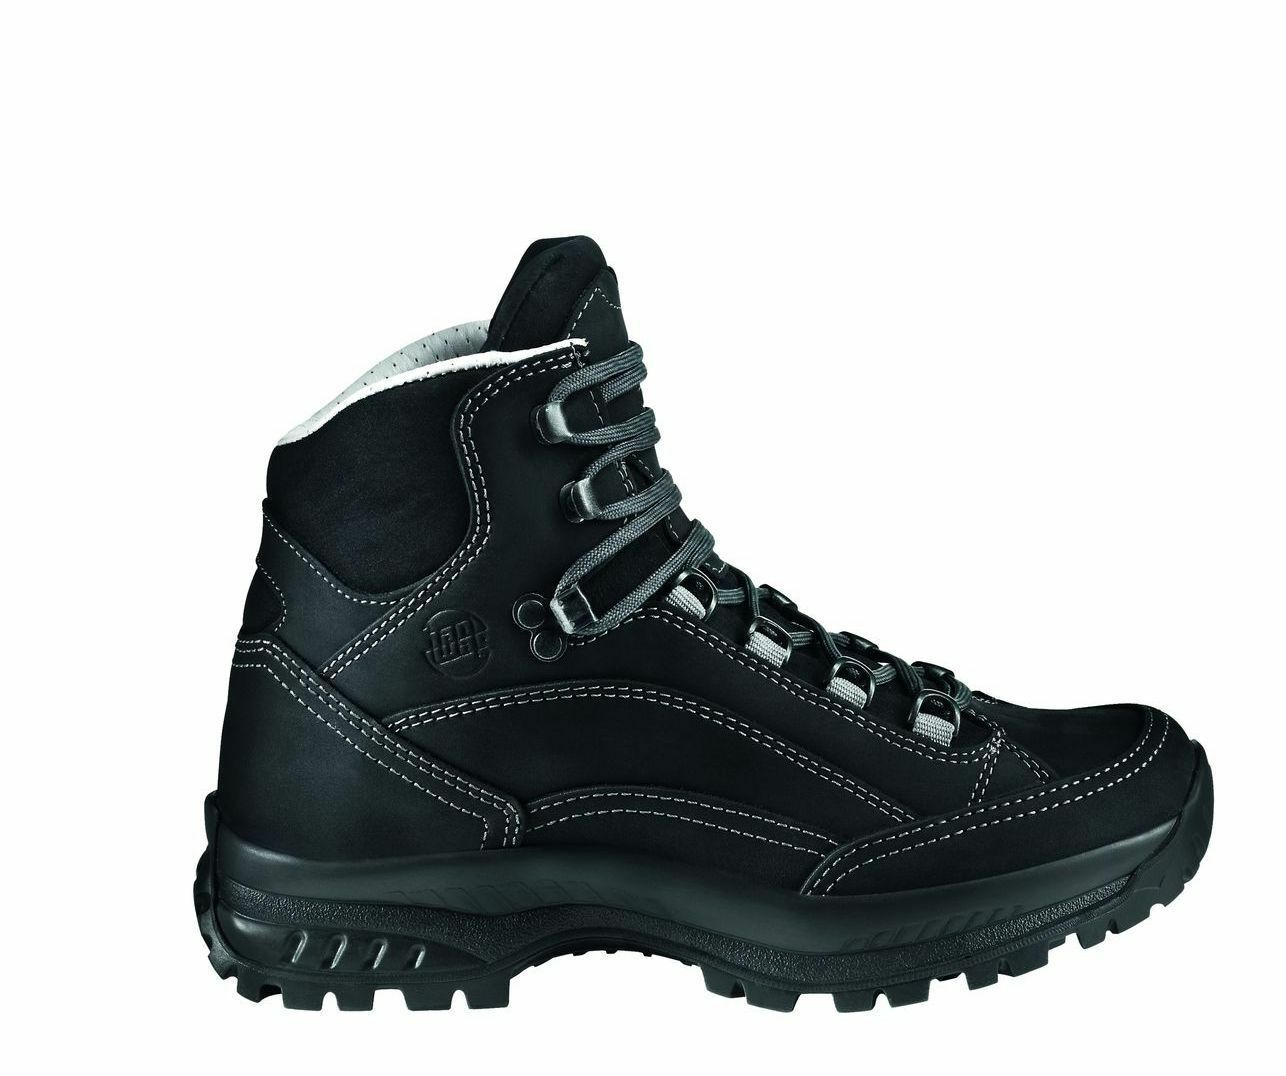 Hanwag Mountain shoes Canyon Men Leather Size 8,5 - 42,5